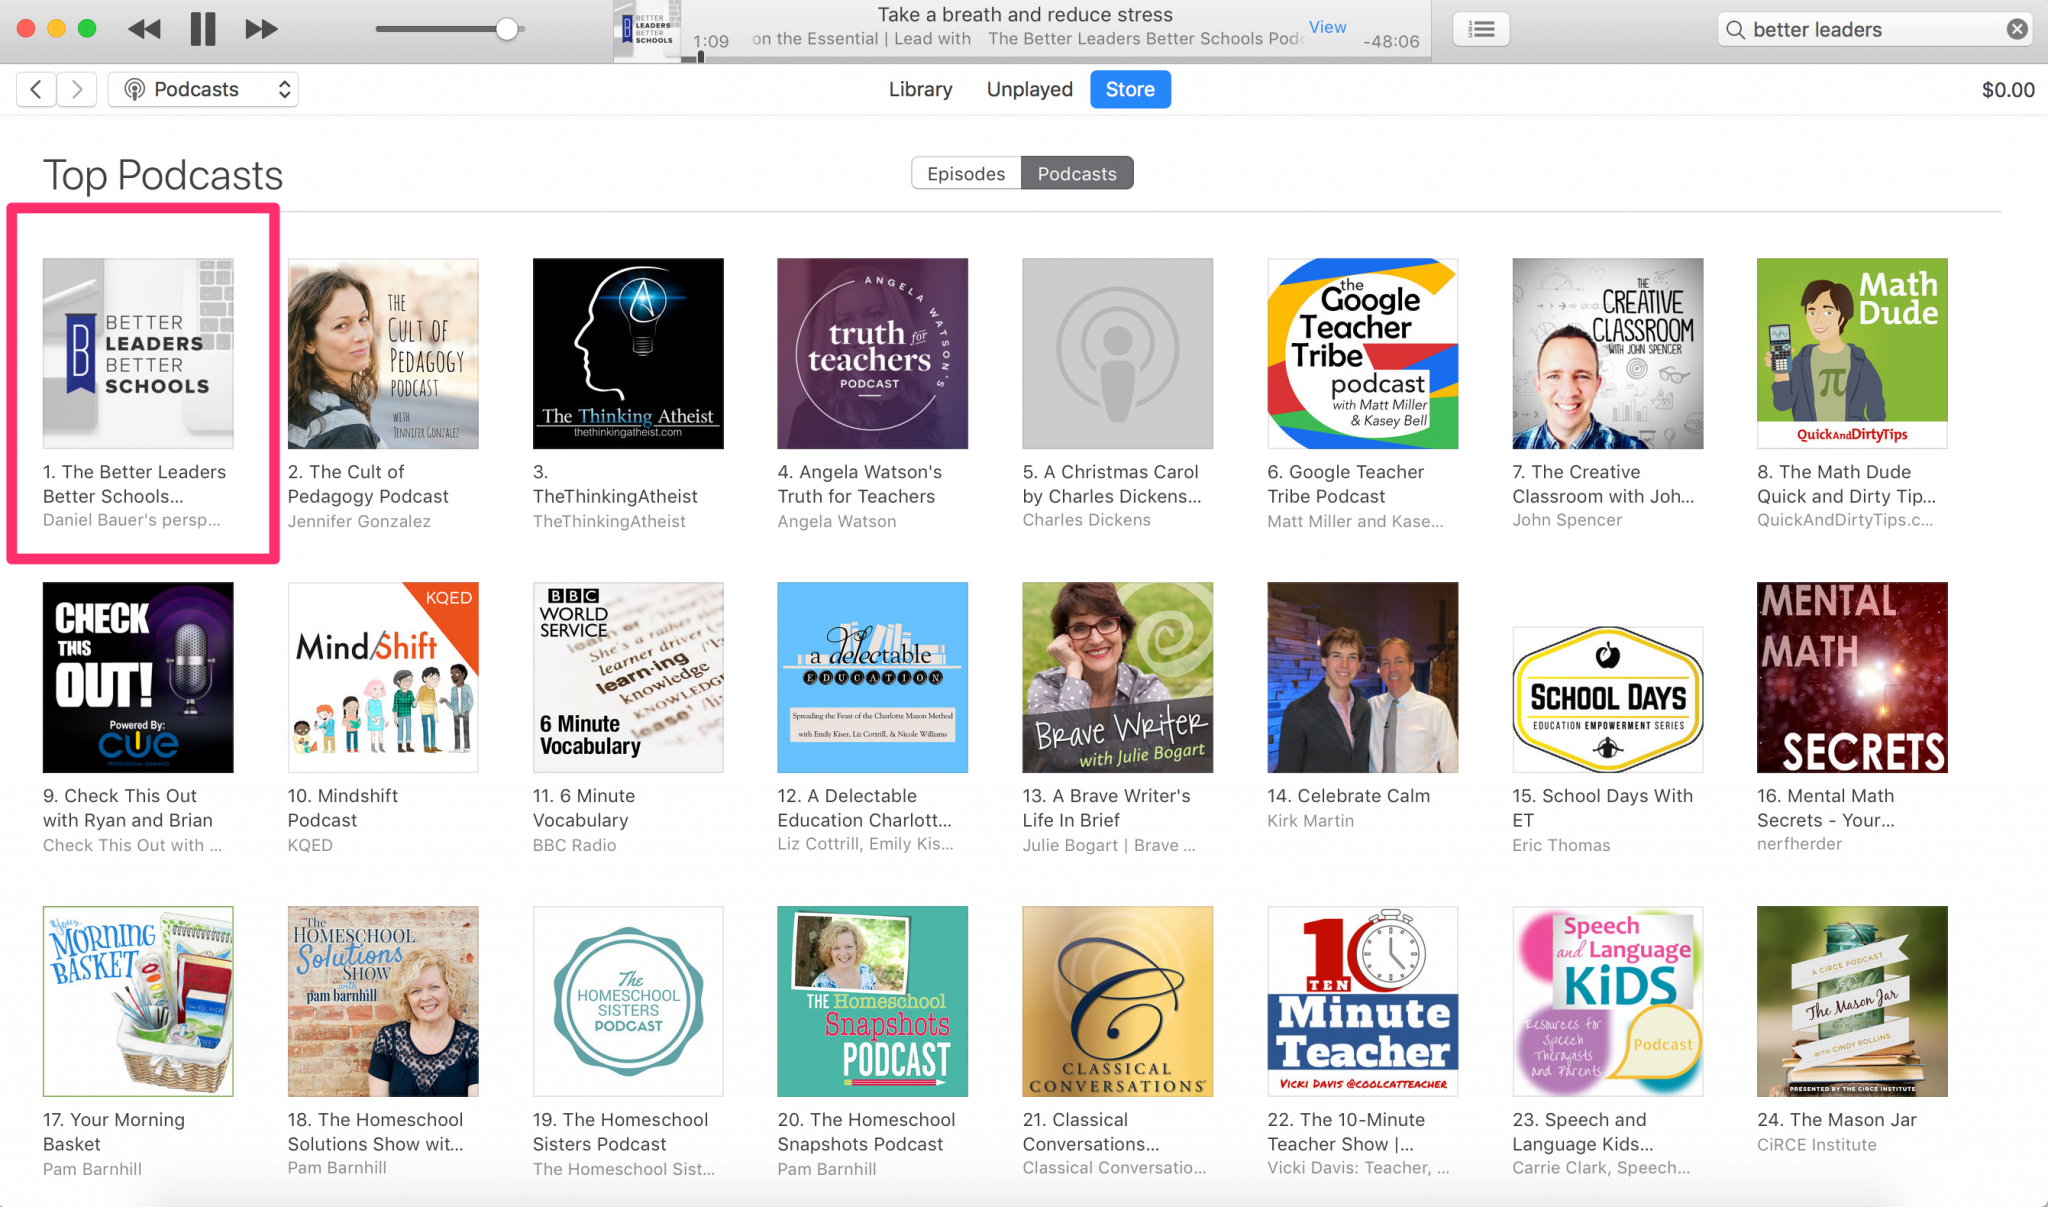 Better Leaders Better Schools is the best podcast for school leaders